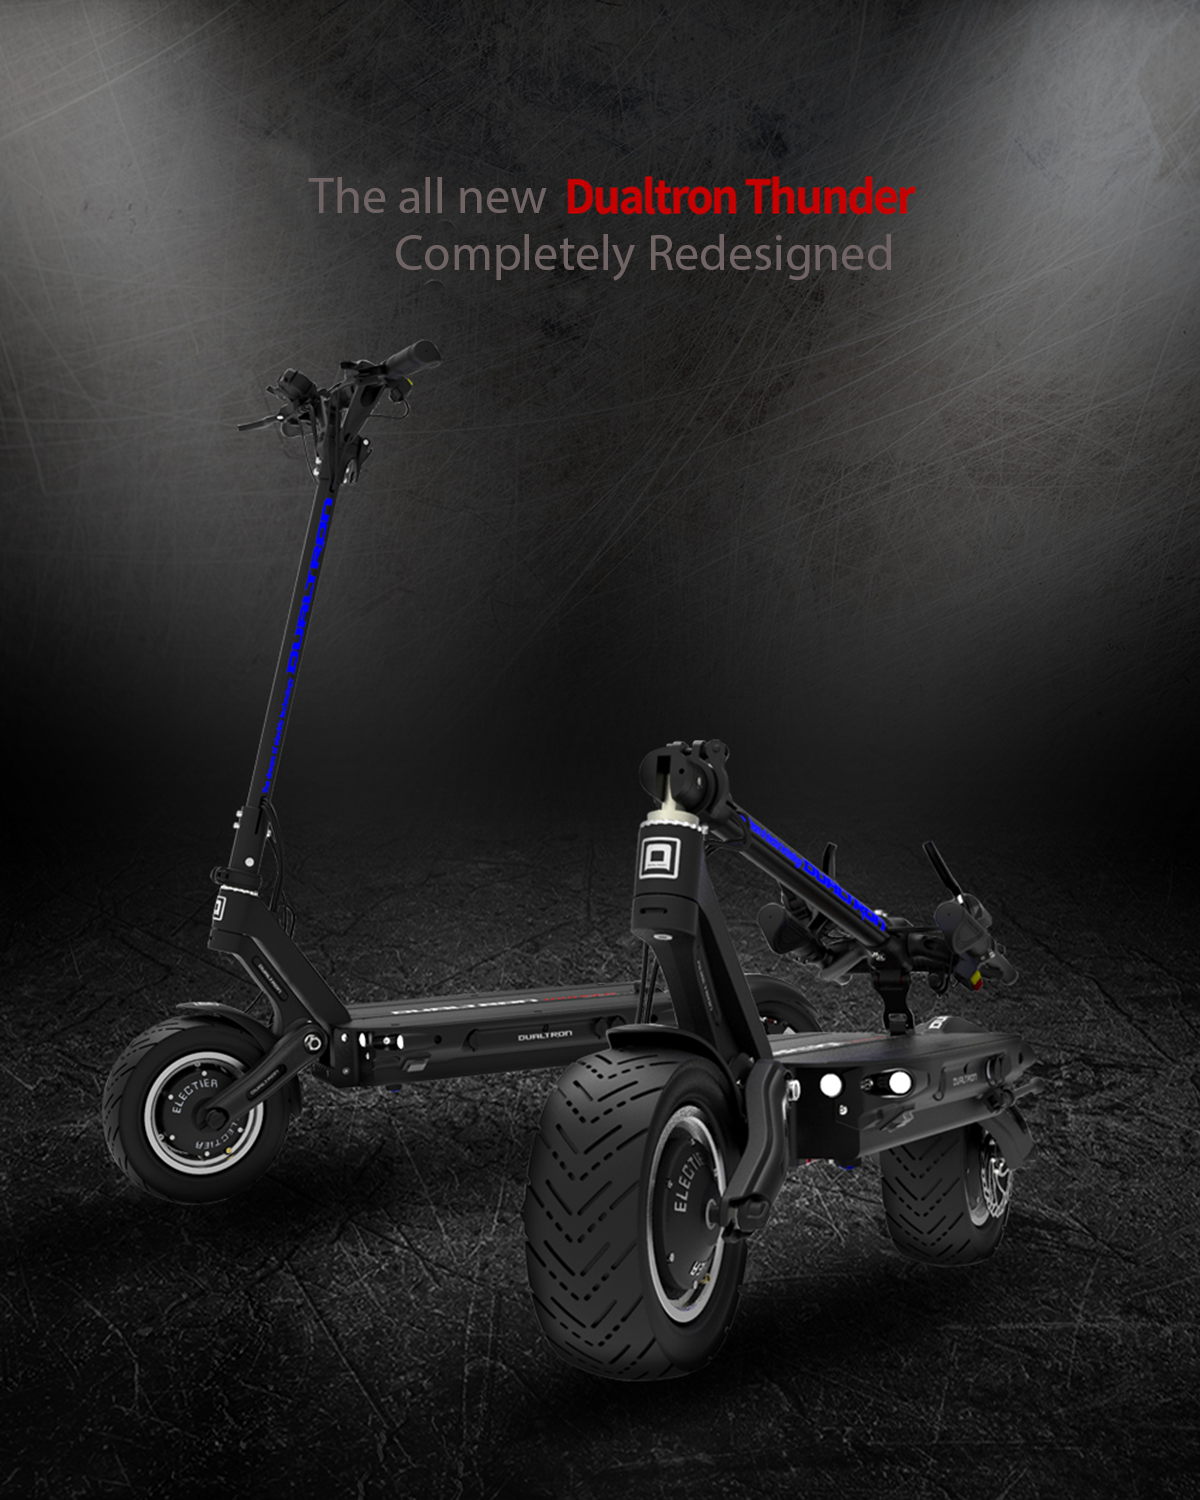 Dualtron Thunder Electric Scooter Headline Picture